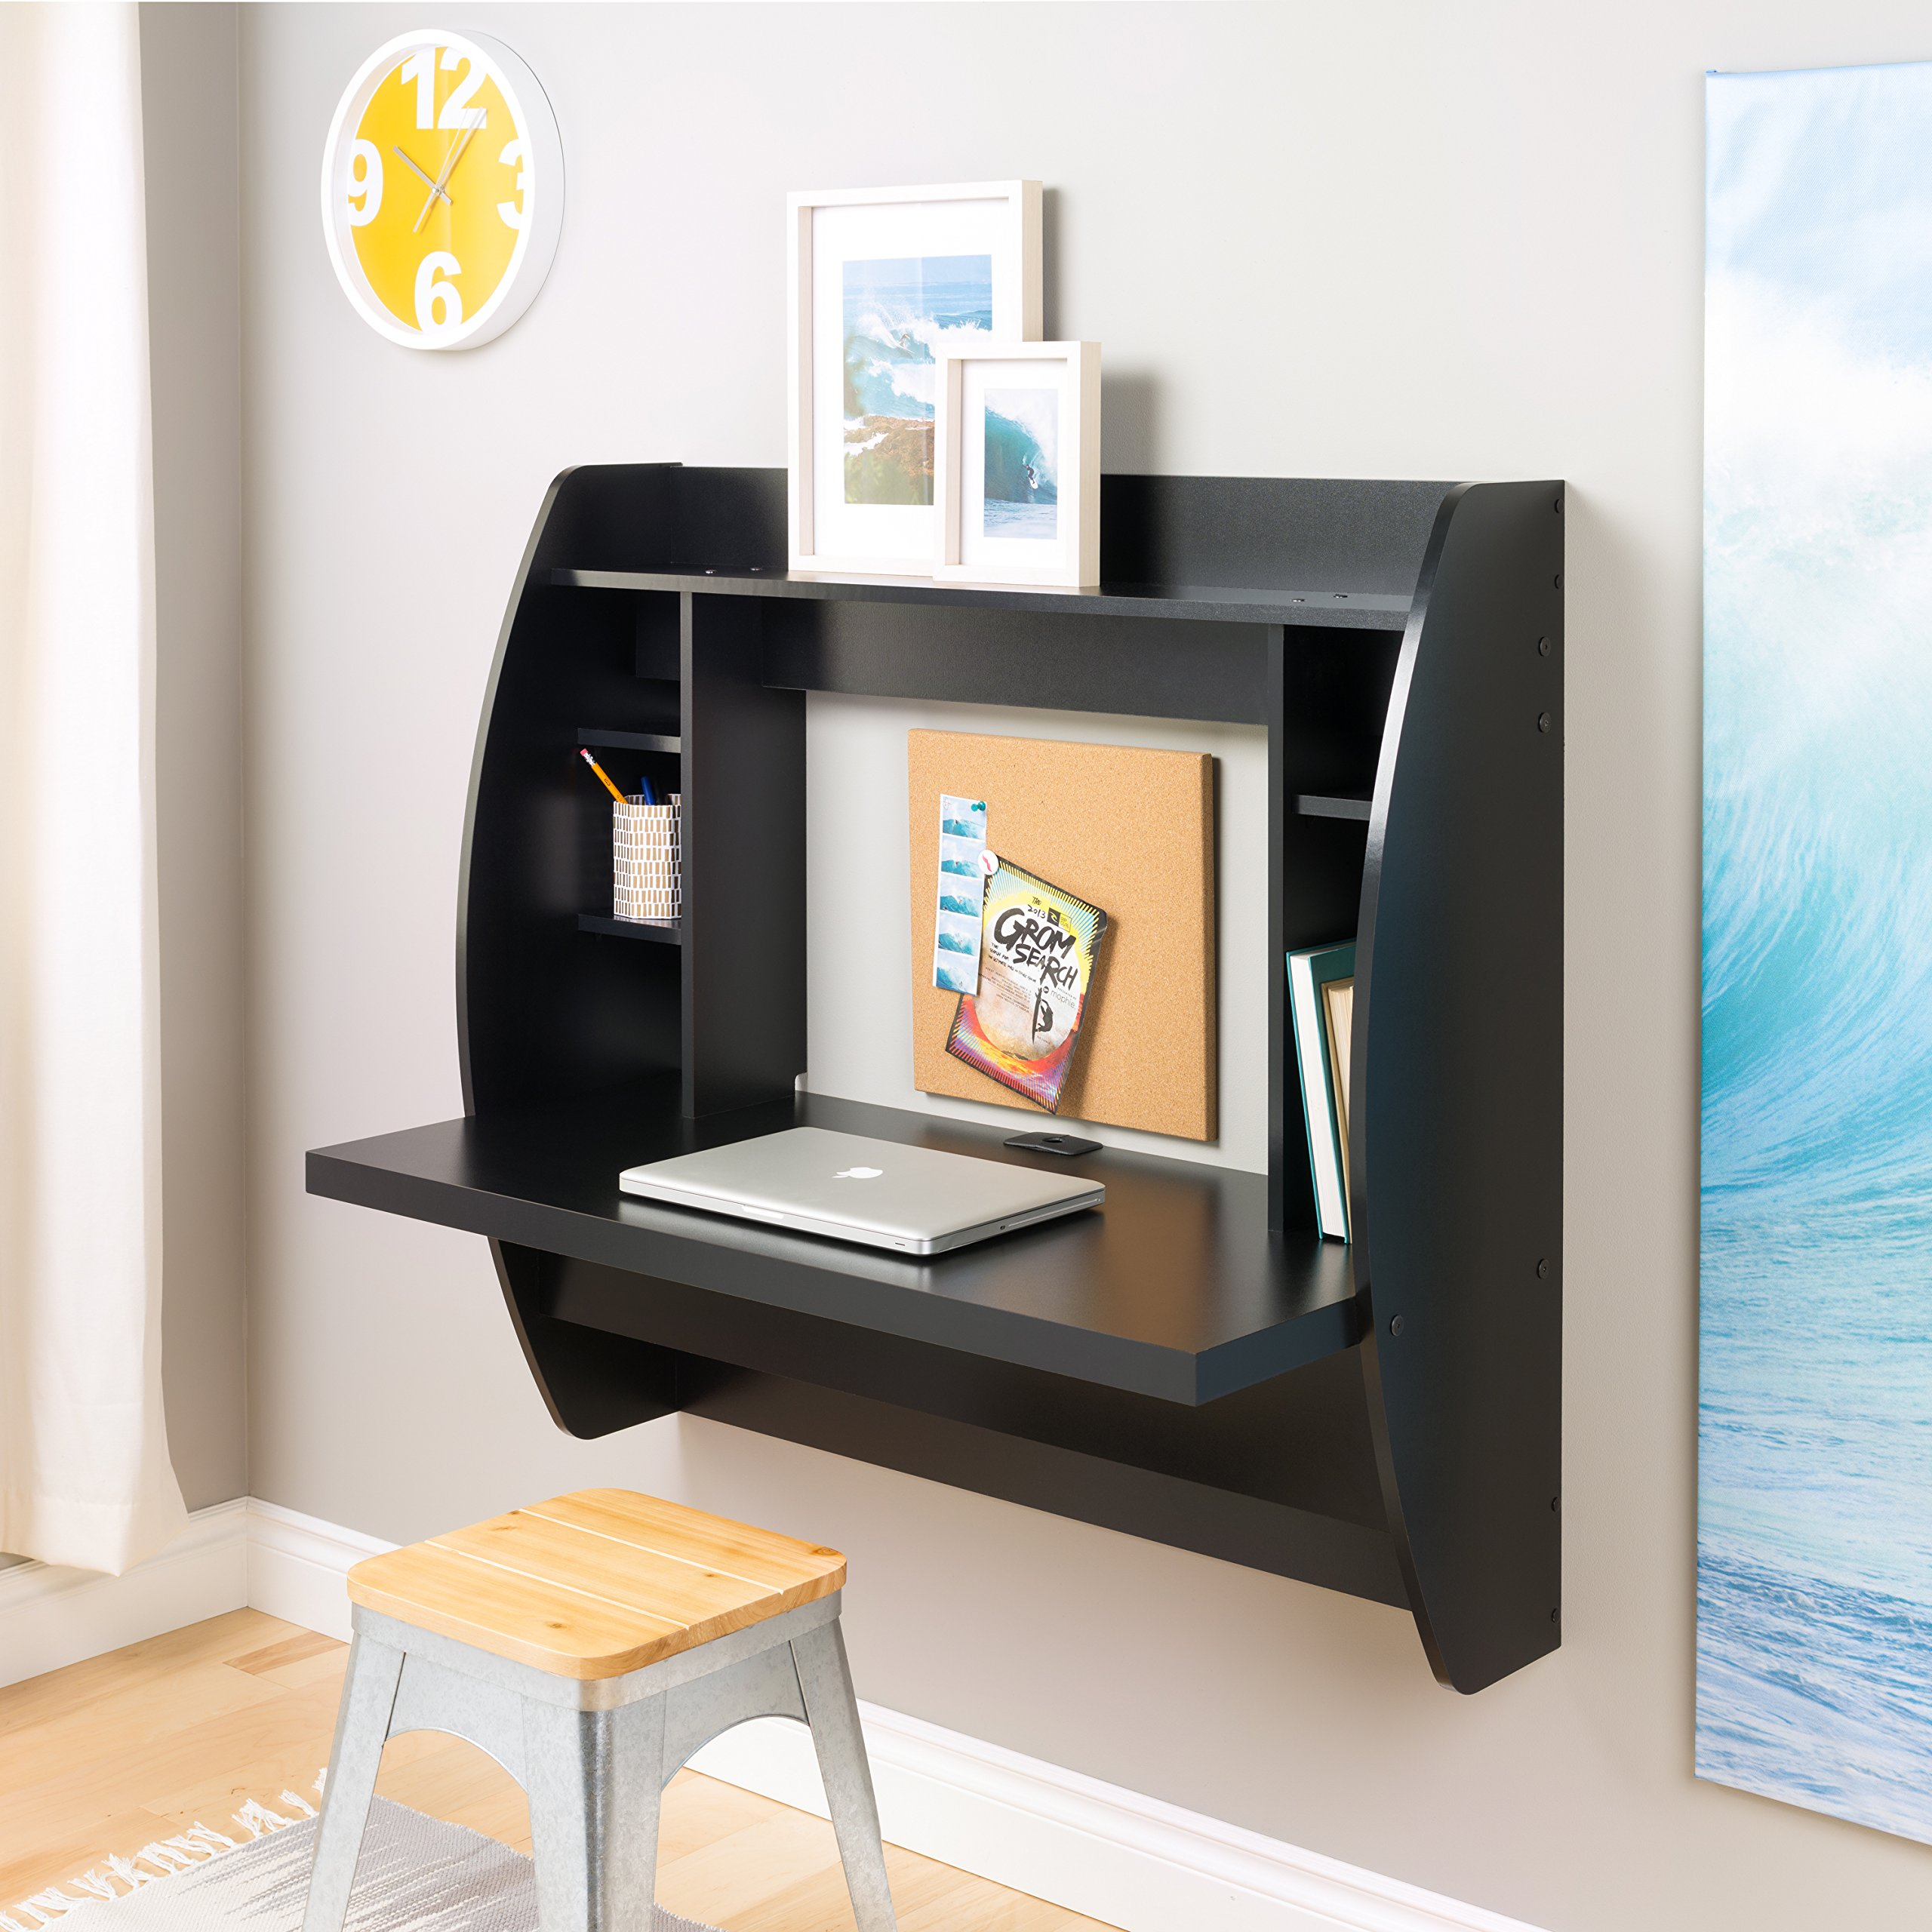 Prepac Wall Mounted Floating Desk with Storage in Black